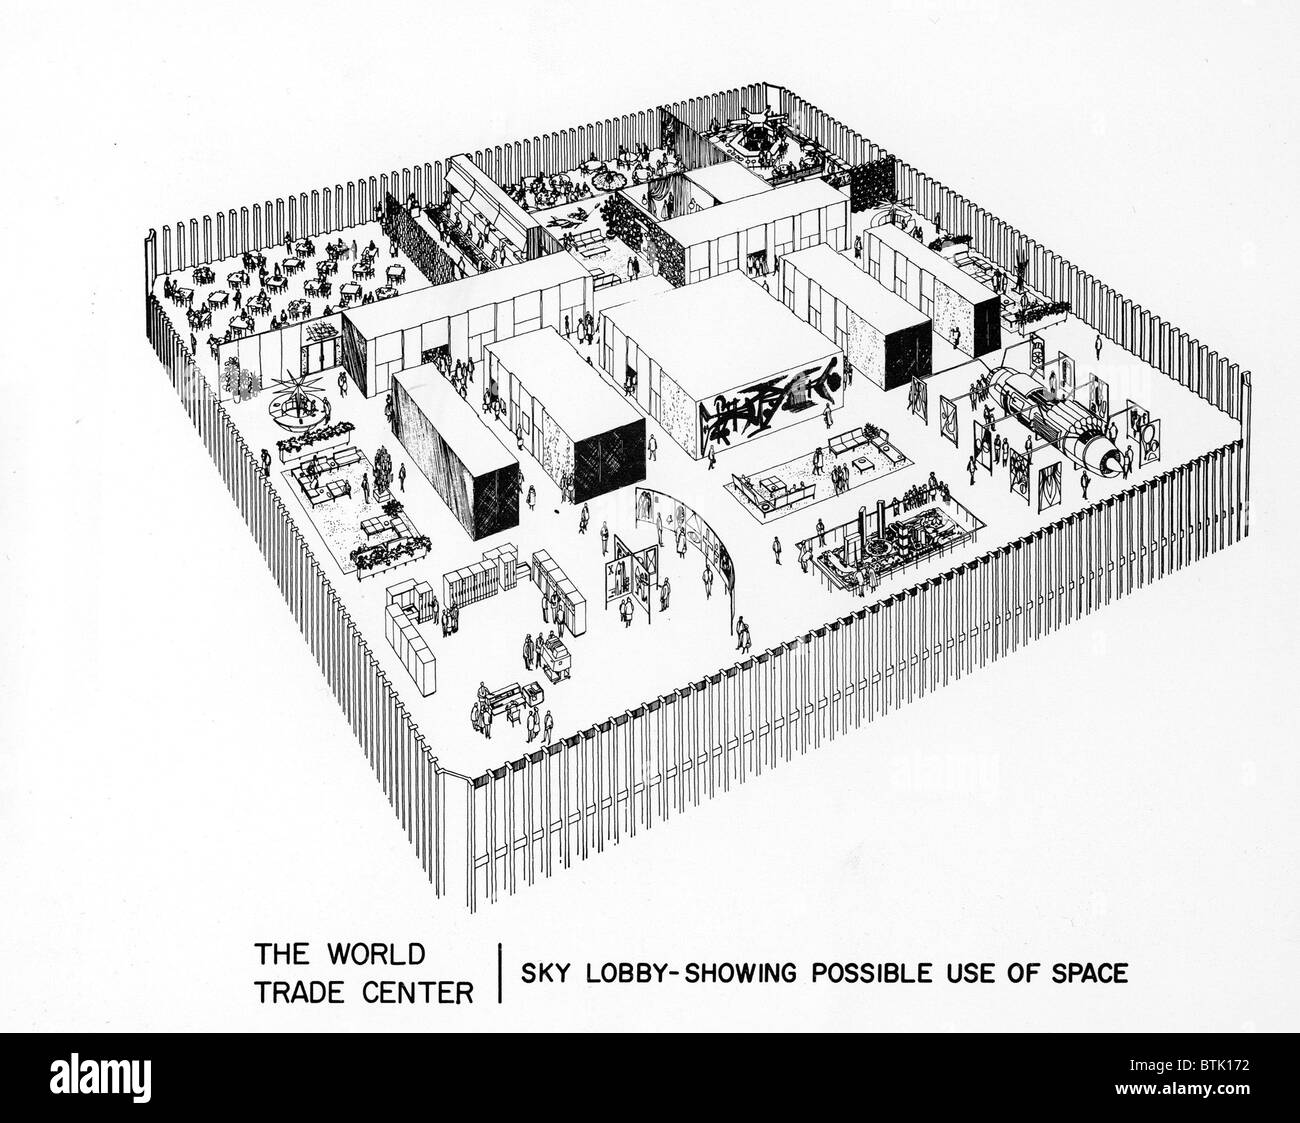 world trade center, diagram of proposed use of sky lobby space, dated  04-08-67